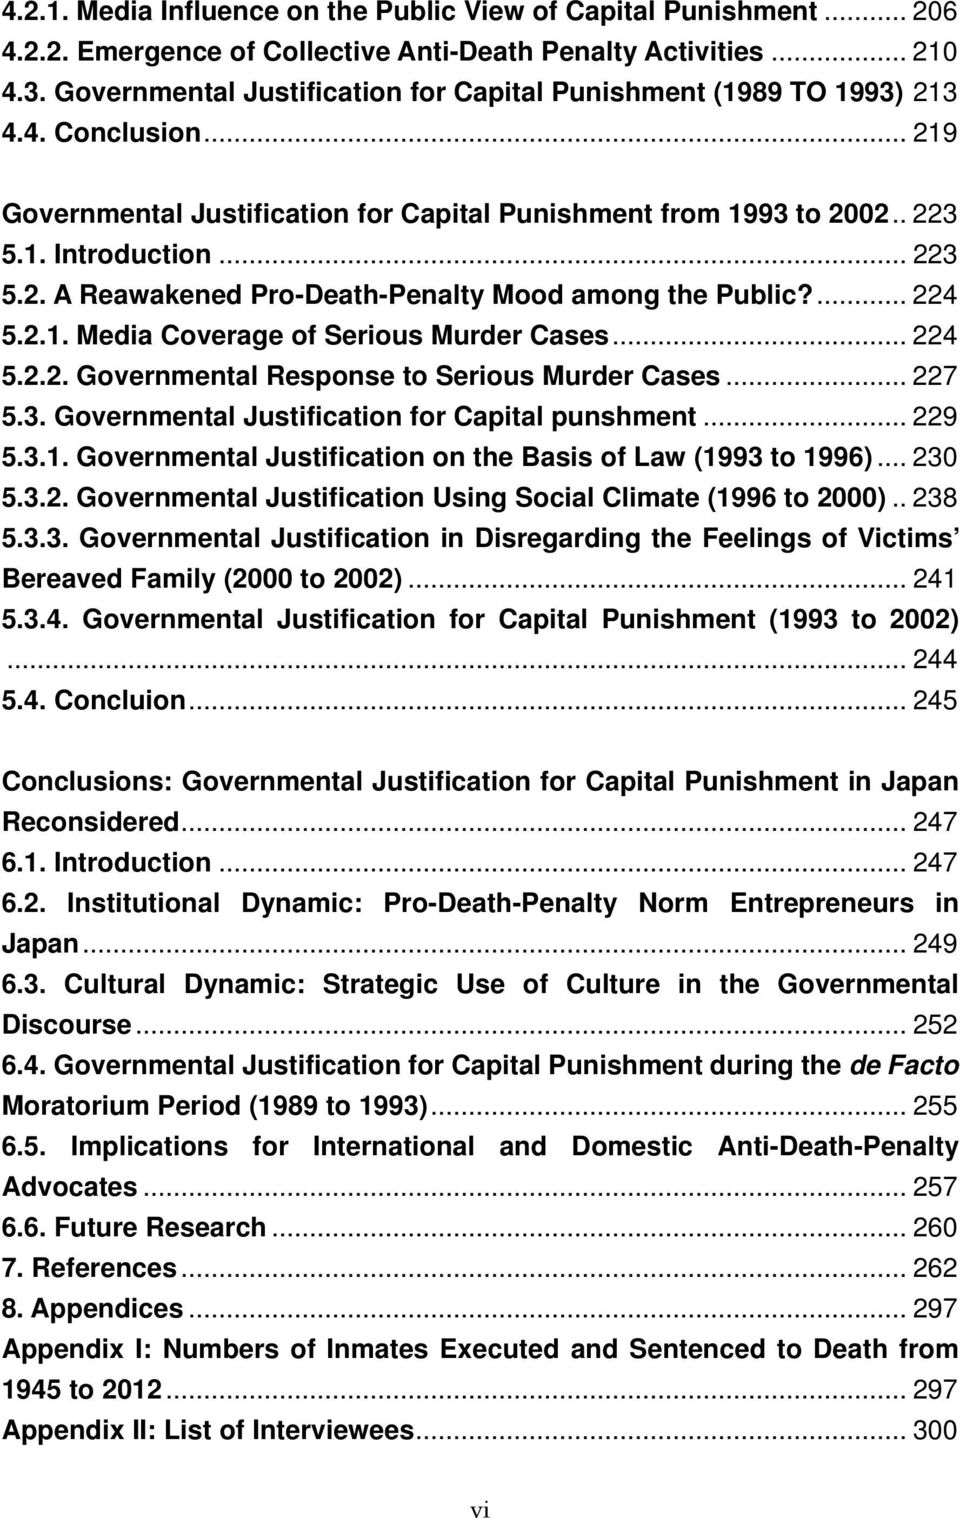 ... 224 5.2.1. Media Coverage of Serious Murder Cases... 224 5.2.2. Governmental Response to Serious Murder Cases... 227 5.3. Governmental Justification for Capital punshment... 229 5.3.1. Governmental Justification on the Basis of Law (1993 to 1996).